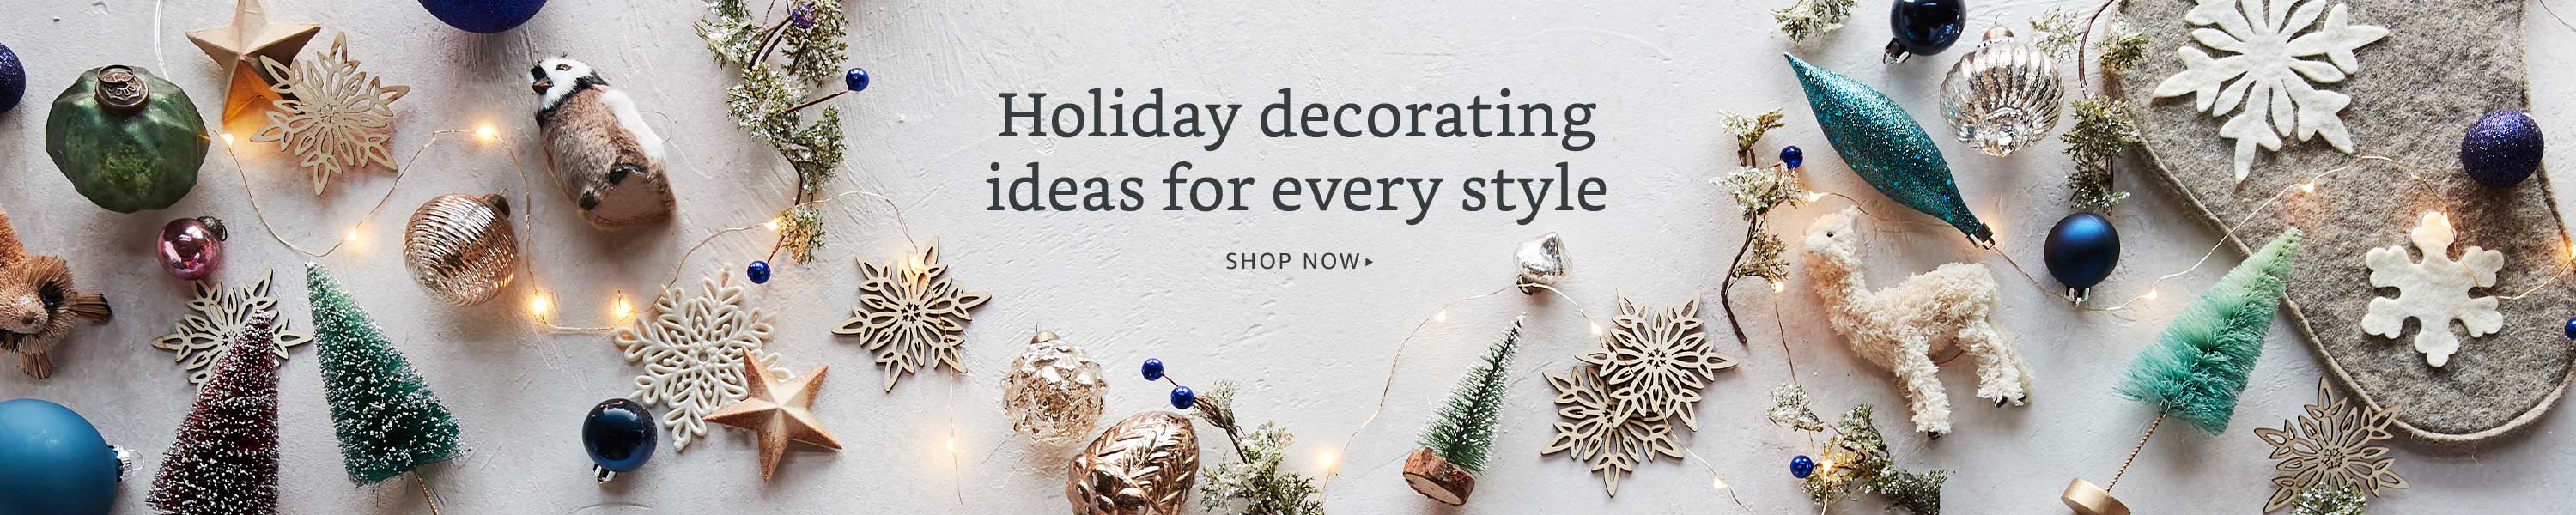 Holiday decorating ideas for every style